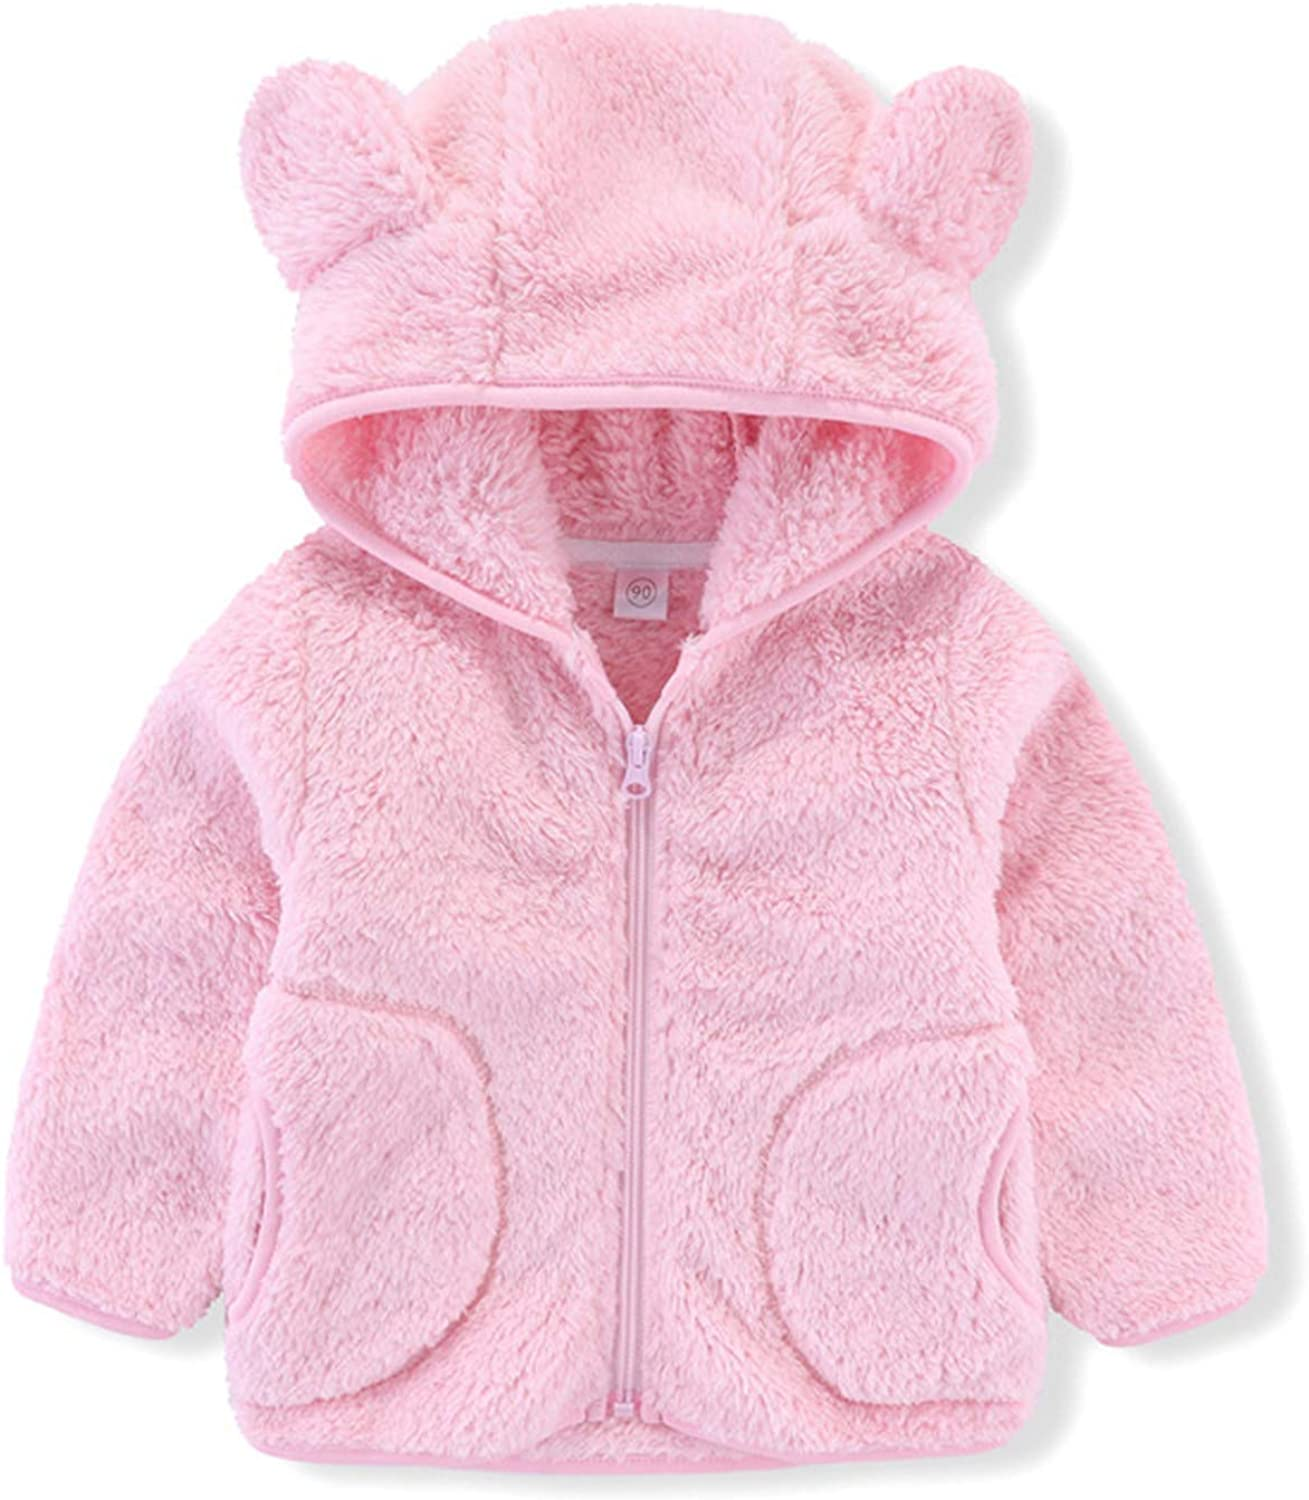 Kids Baby sale Girls Reservation Boys Flannel Zip Hooded Jacket Bear Ca with Ears